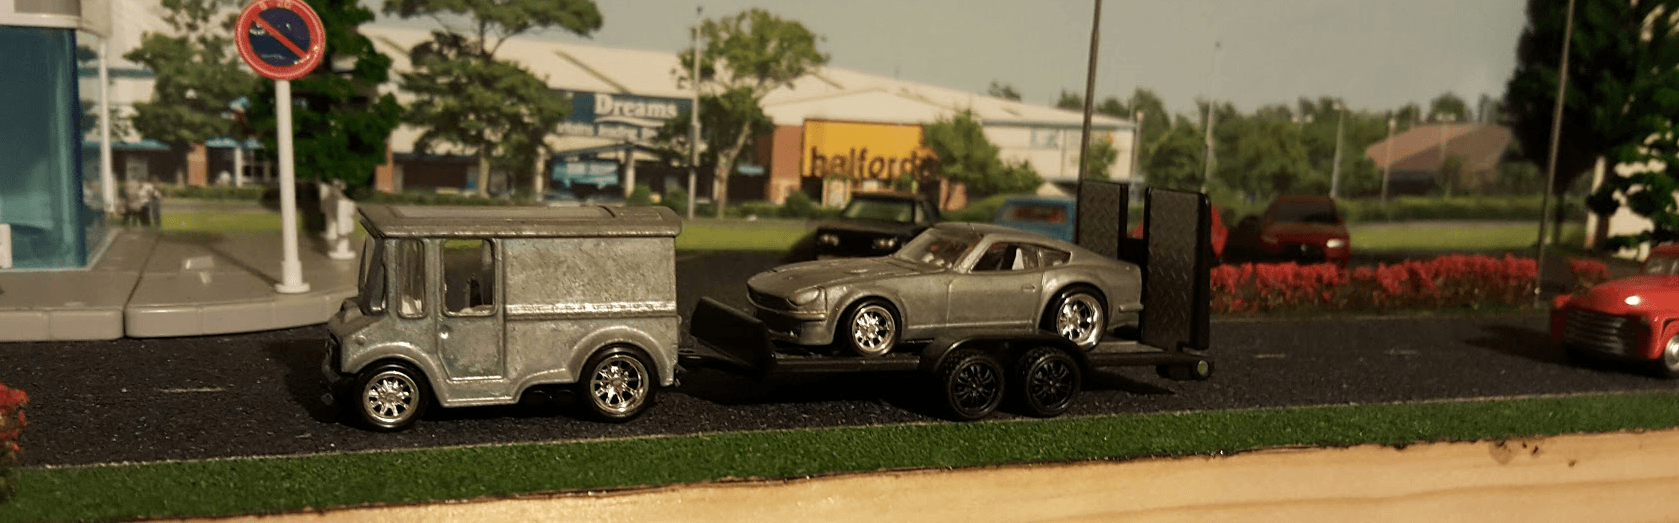 Breadbox and Datsun 240z